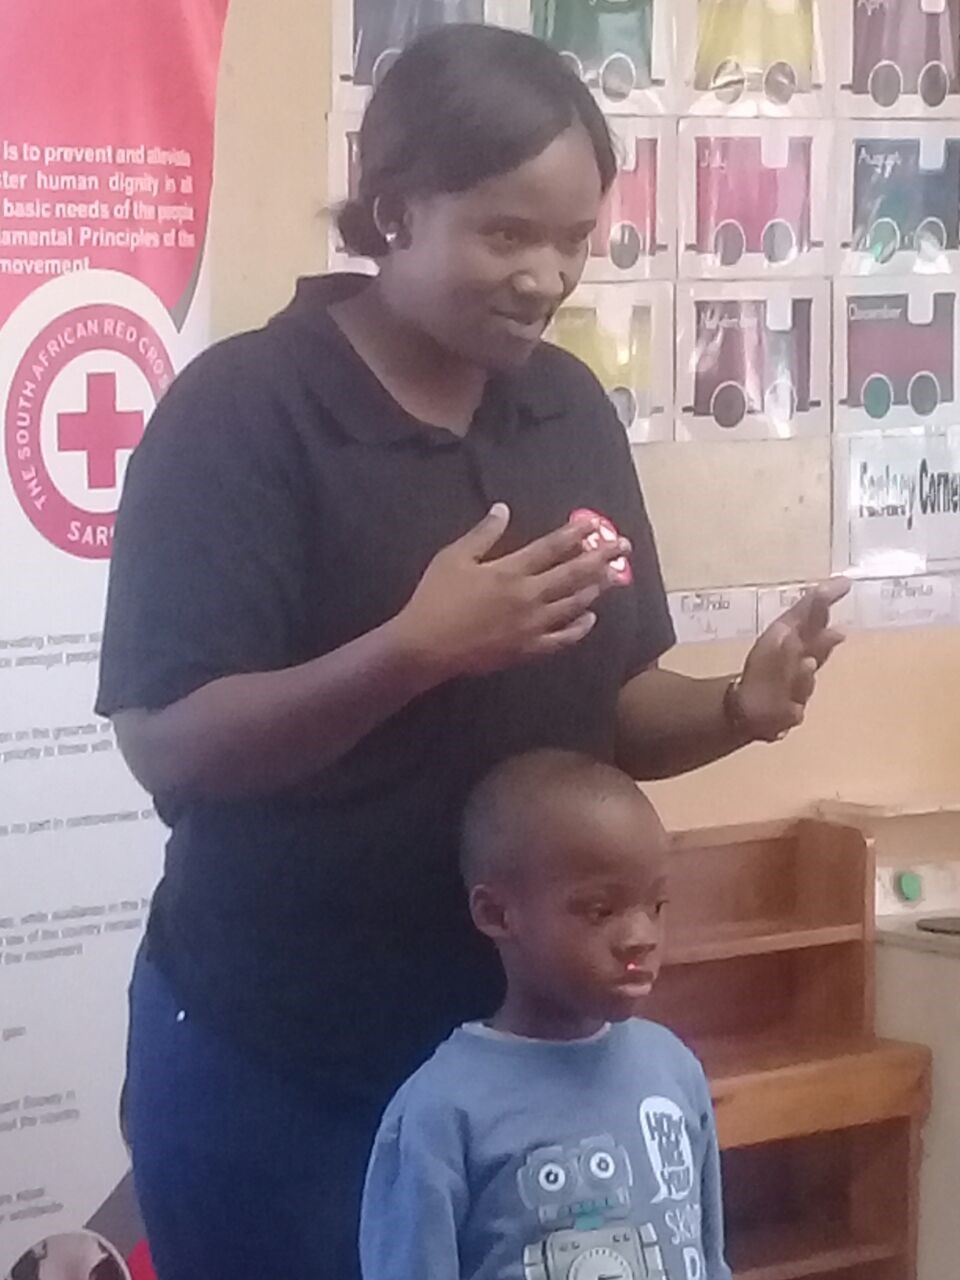 First Aid lessons for creche educators